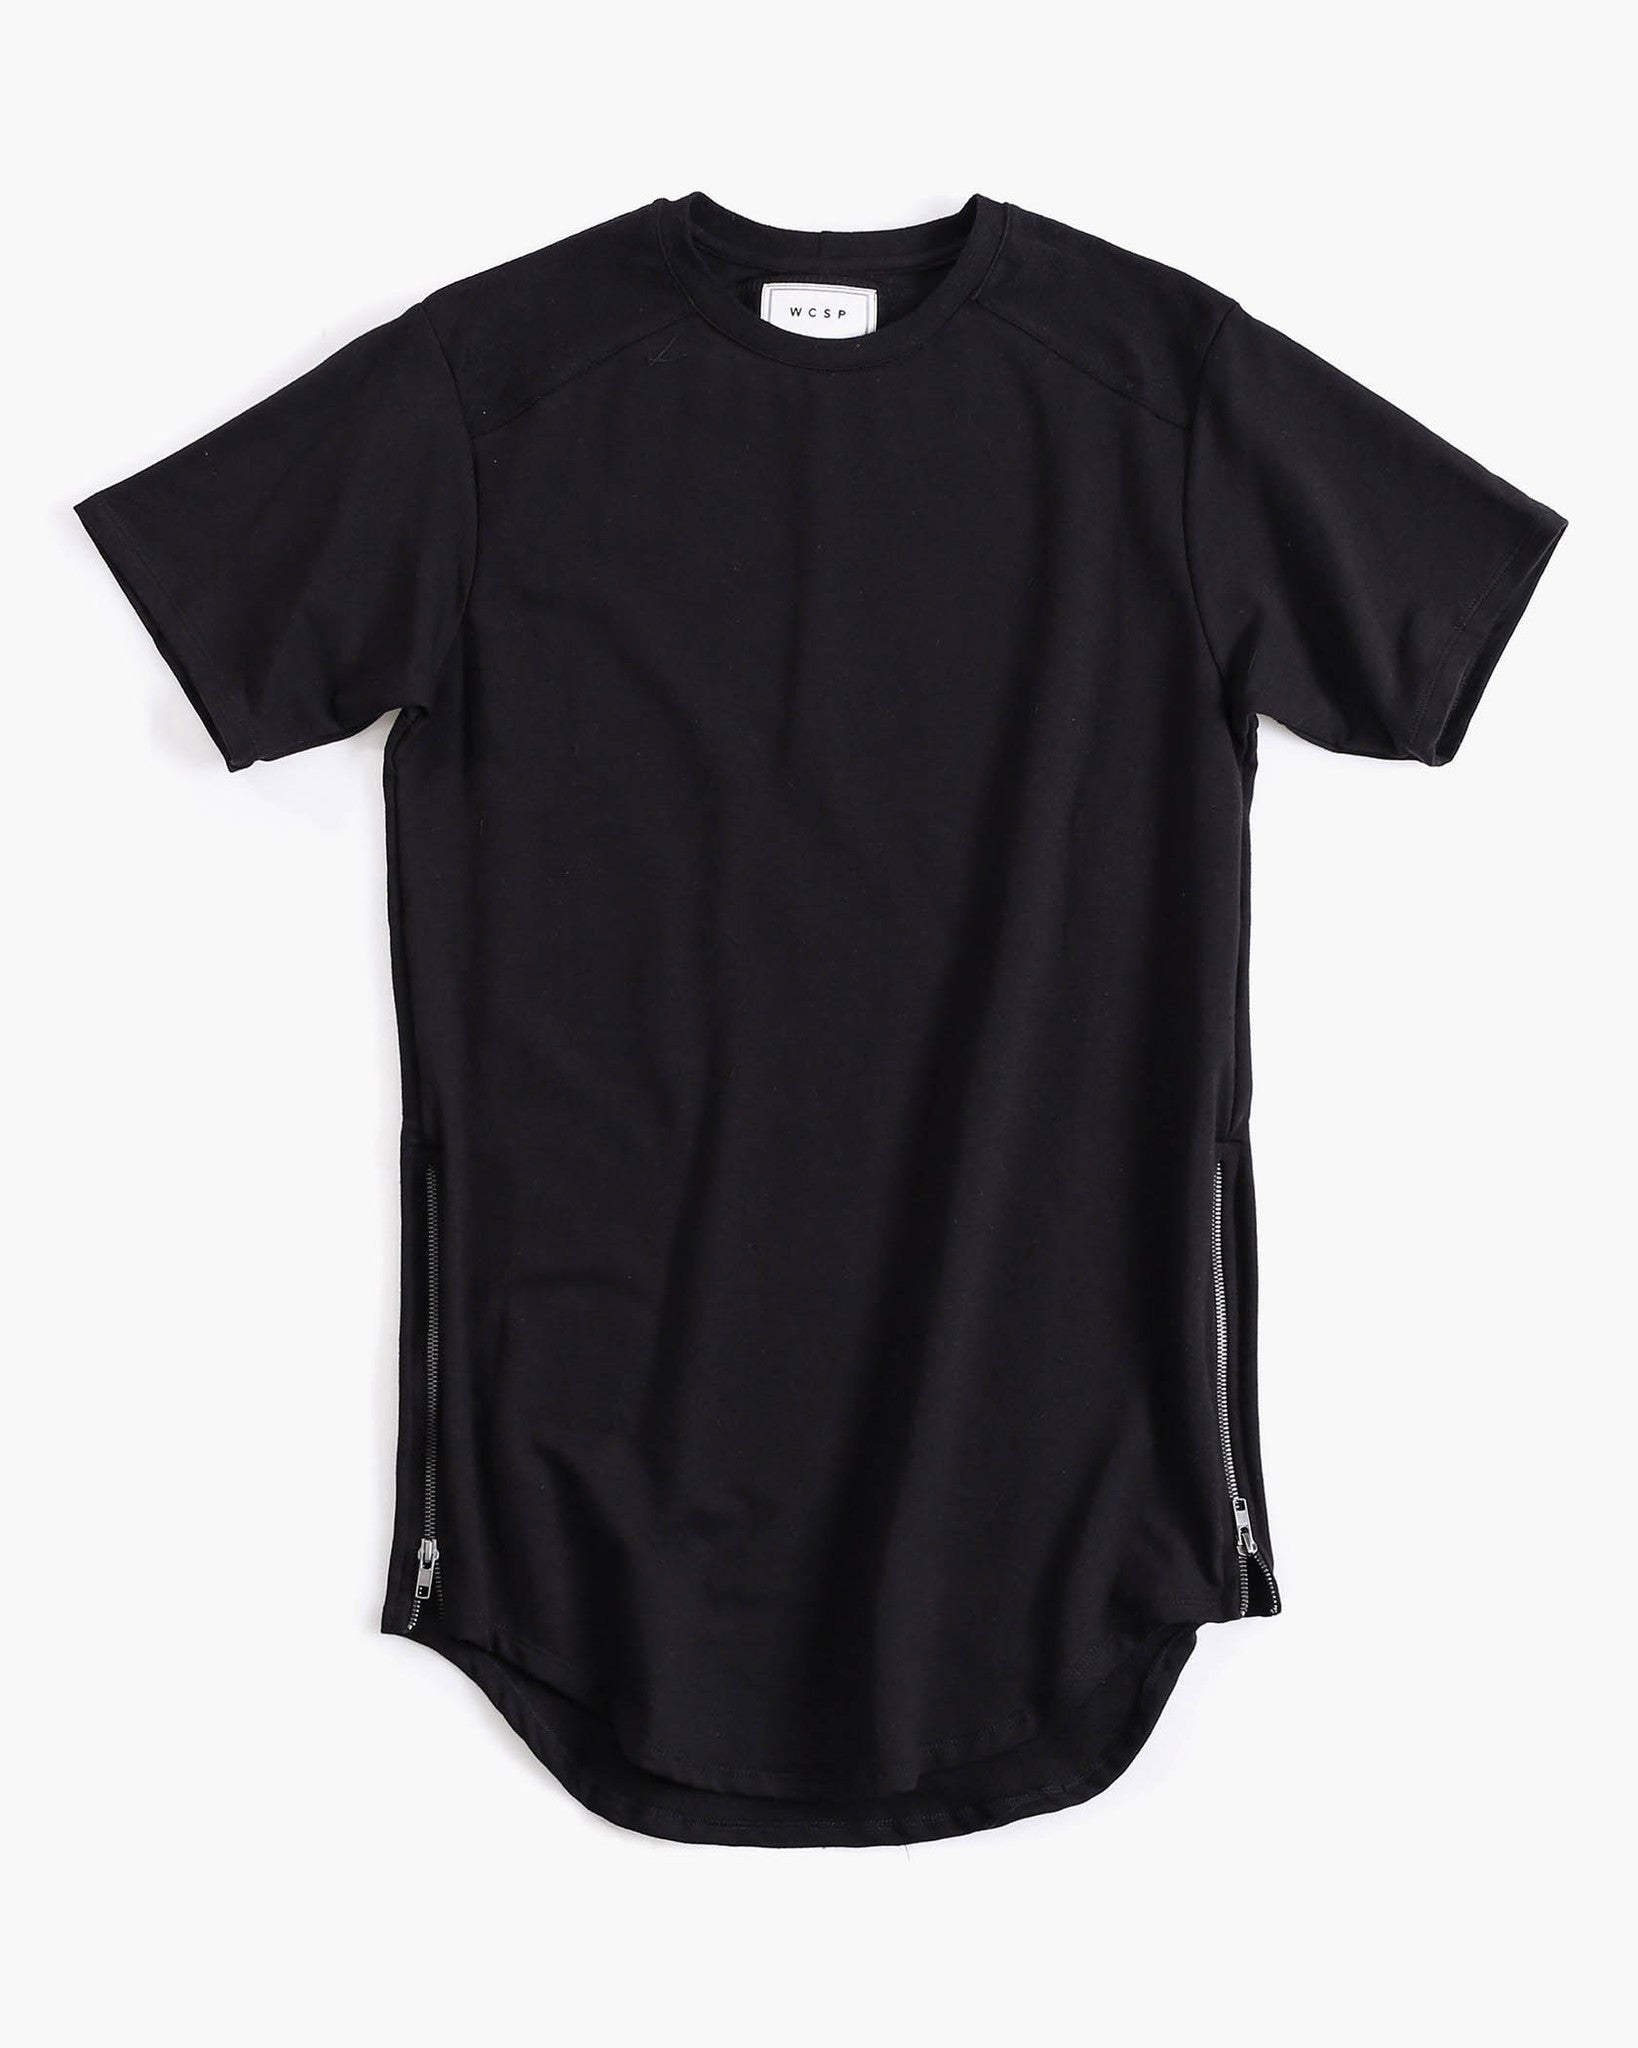 Vincente French Terry Scoop Neck Tee